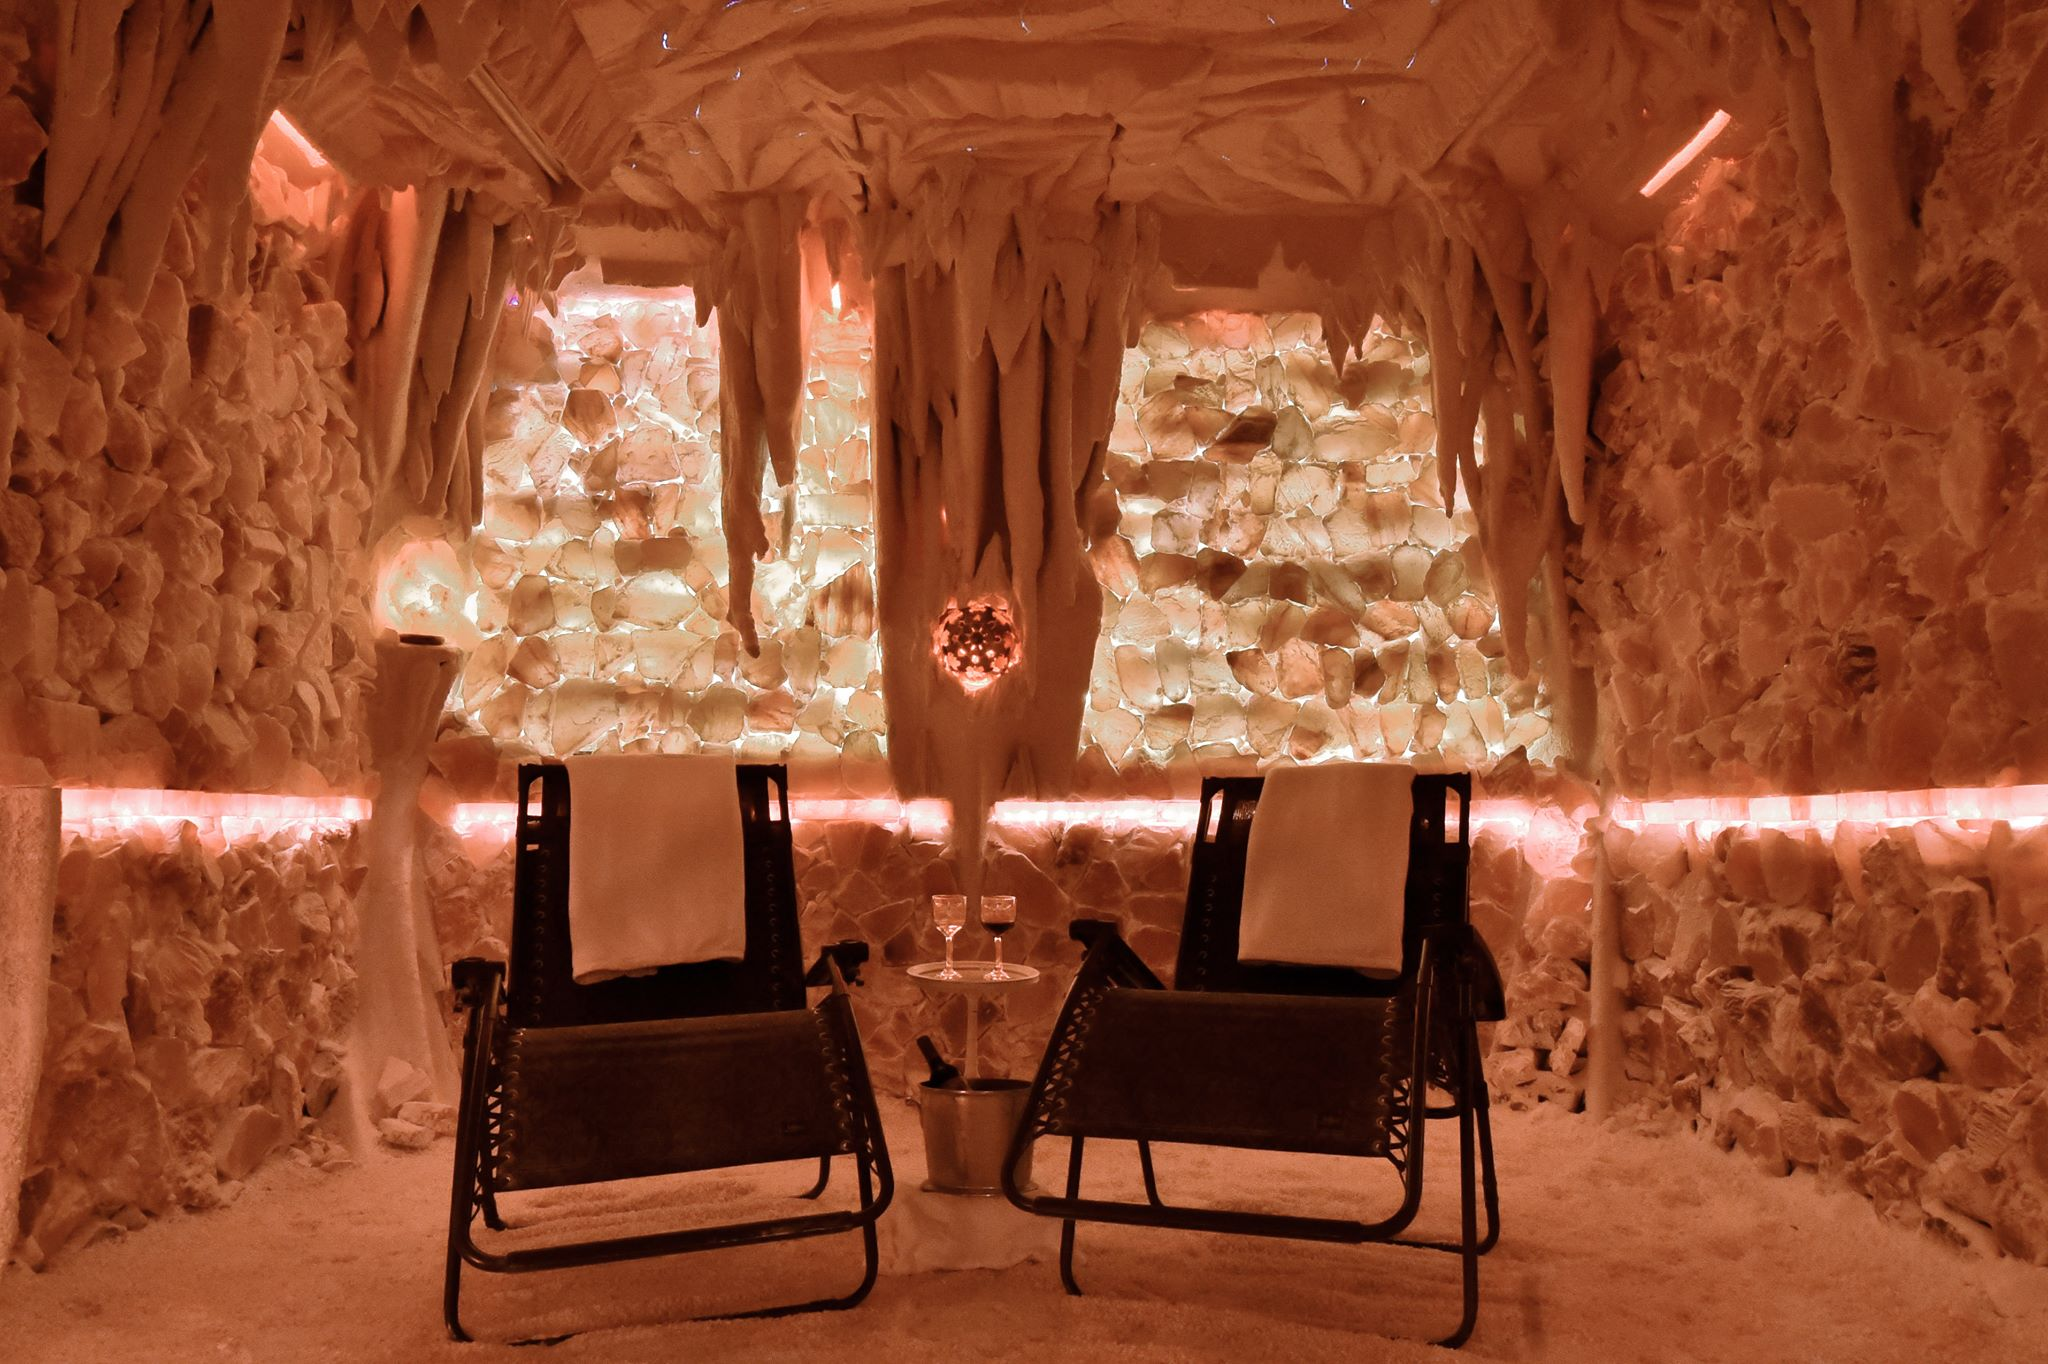 The Salt Cave In South Carolina Is A Relaxing Himalayan